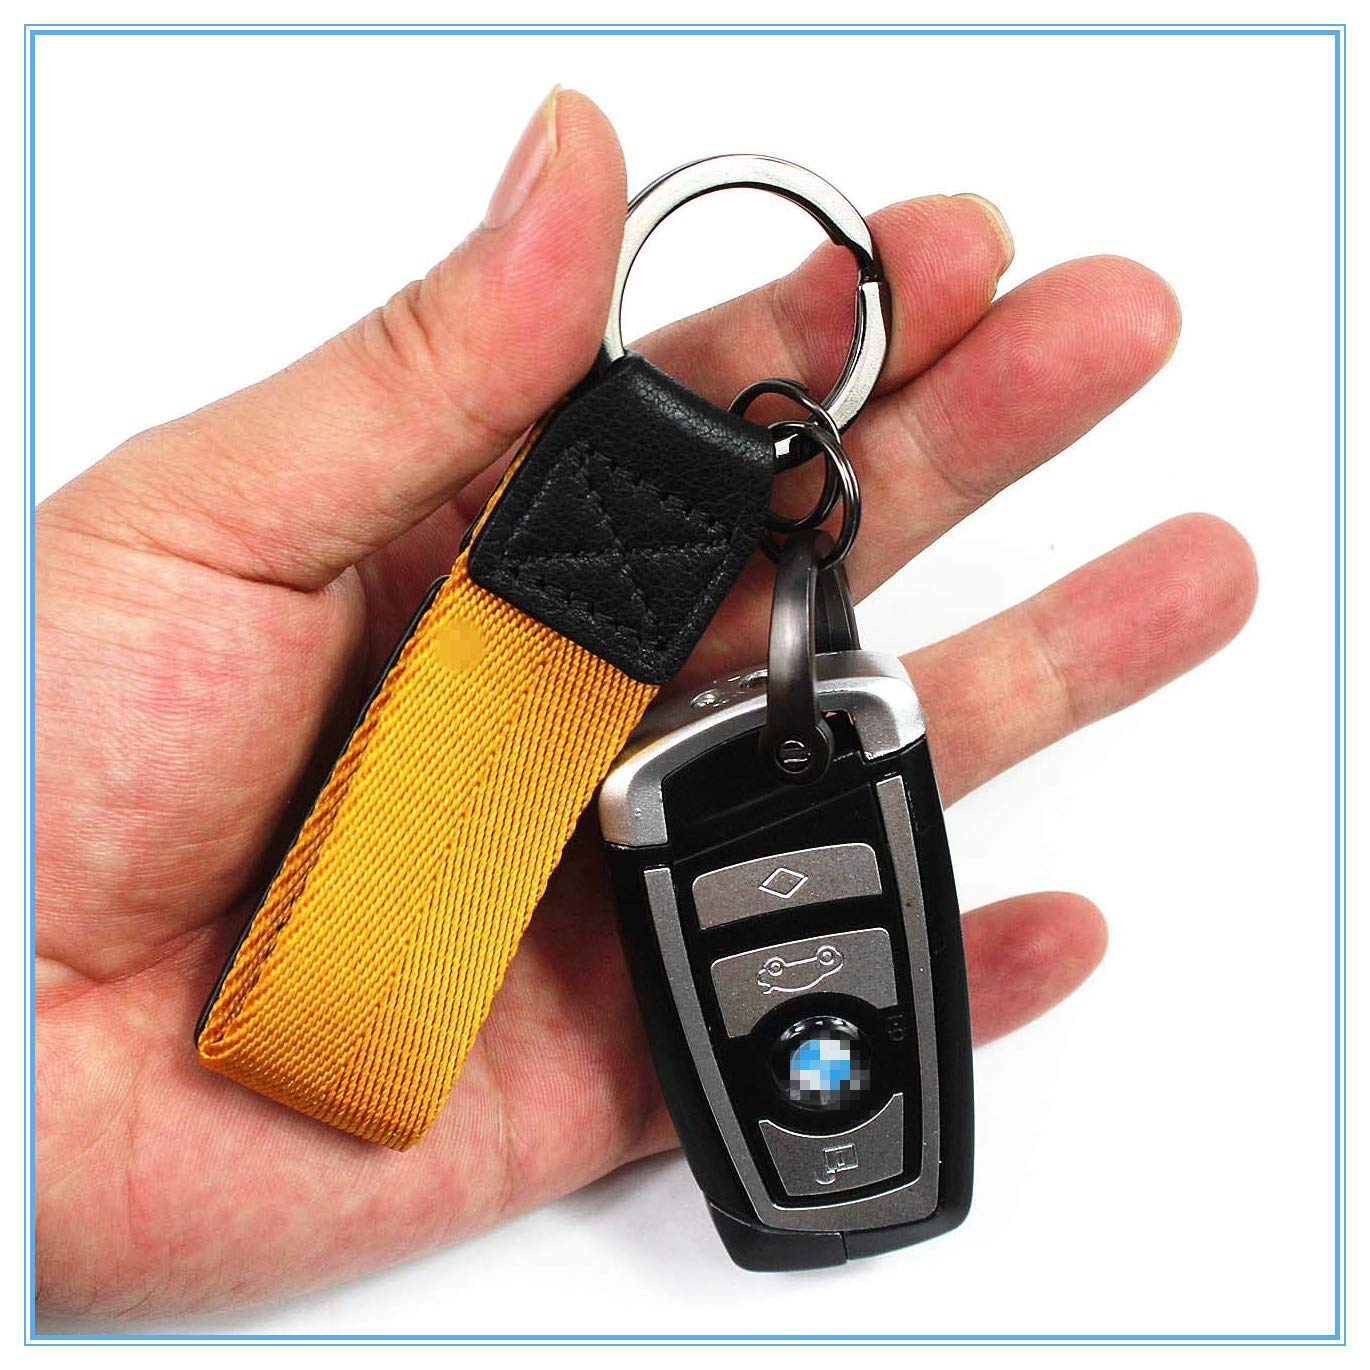 LXFF Genuine Leather Valet Keychain Car Key Chain Key fob Ring for Men Women in Gift Box